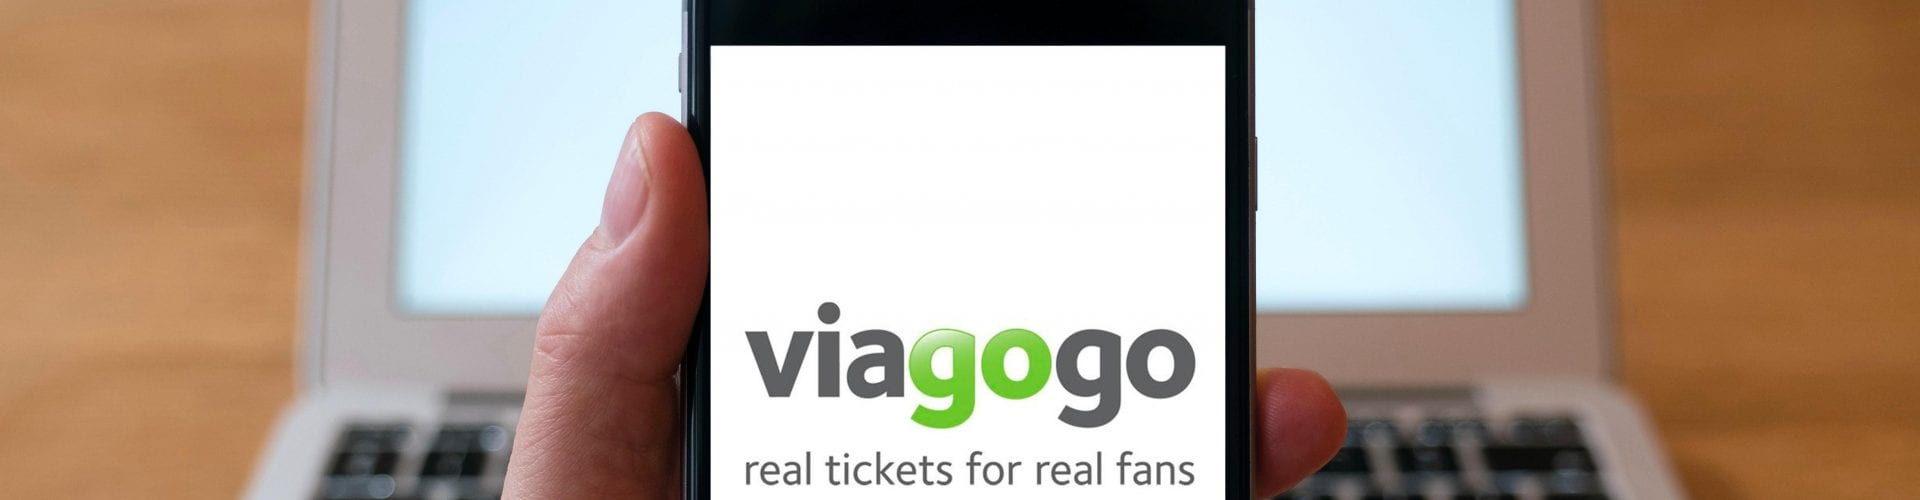 CMA Prepares For Another Round of Legal Action Against Viagogo